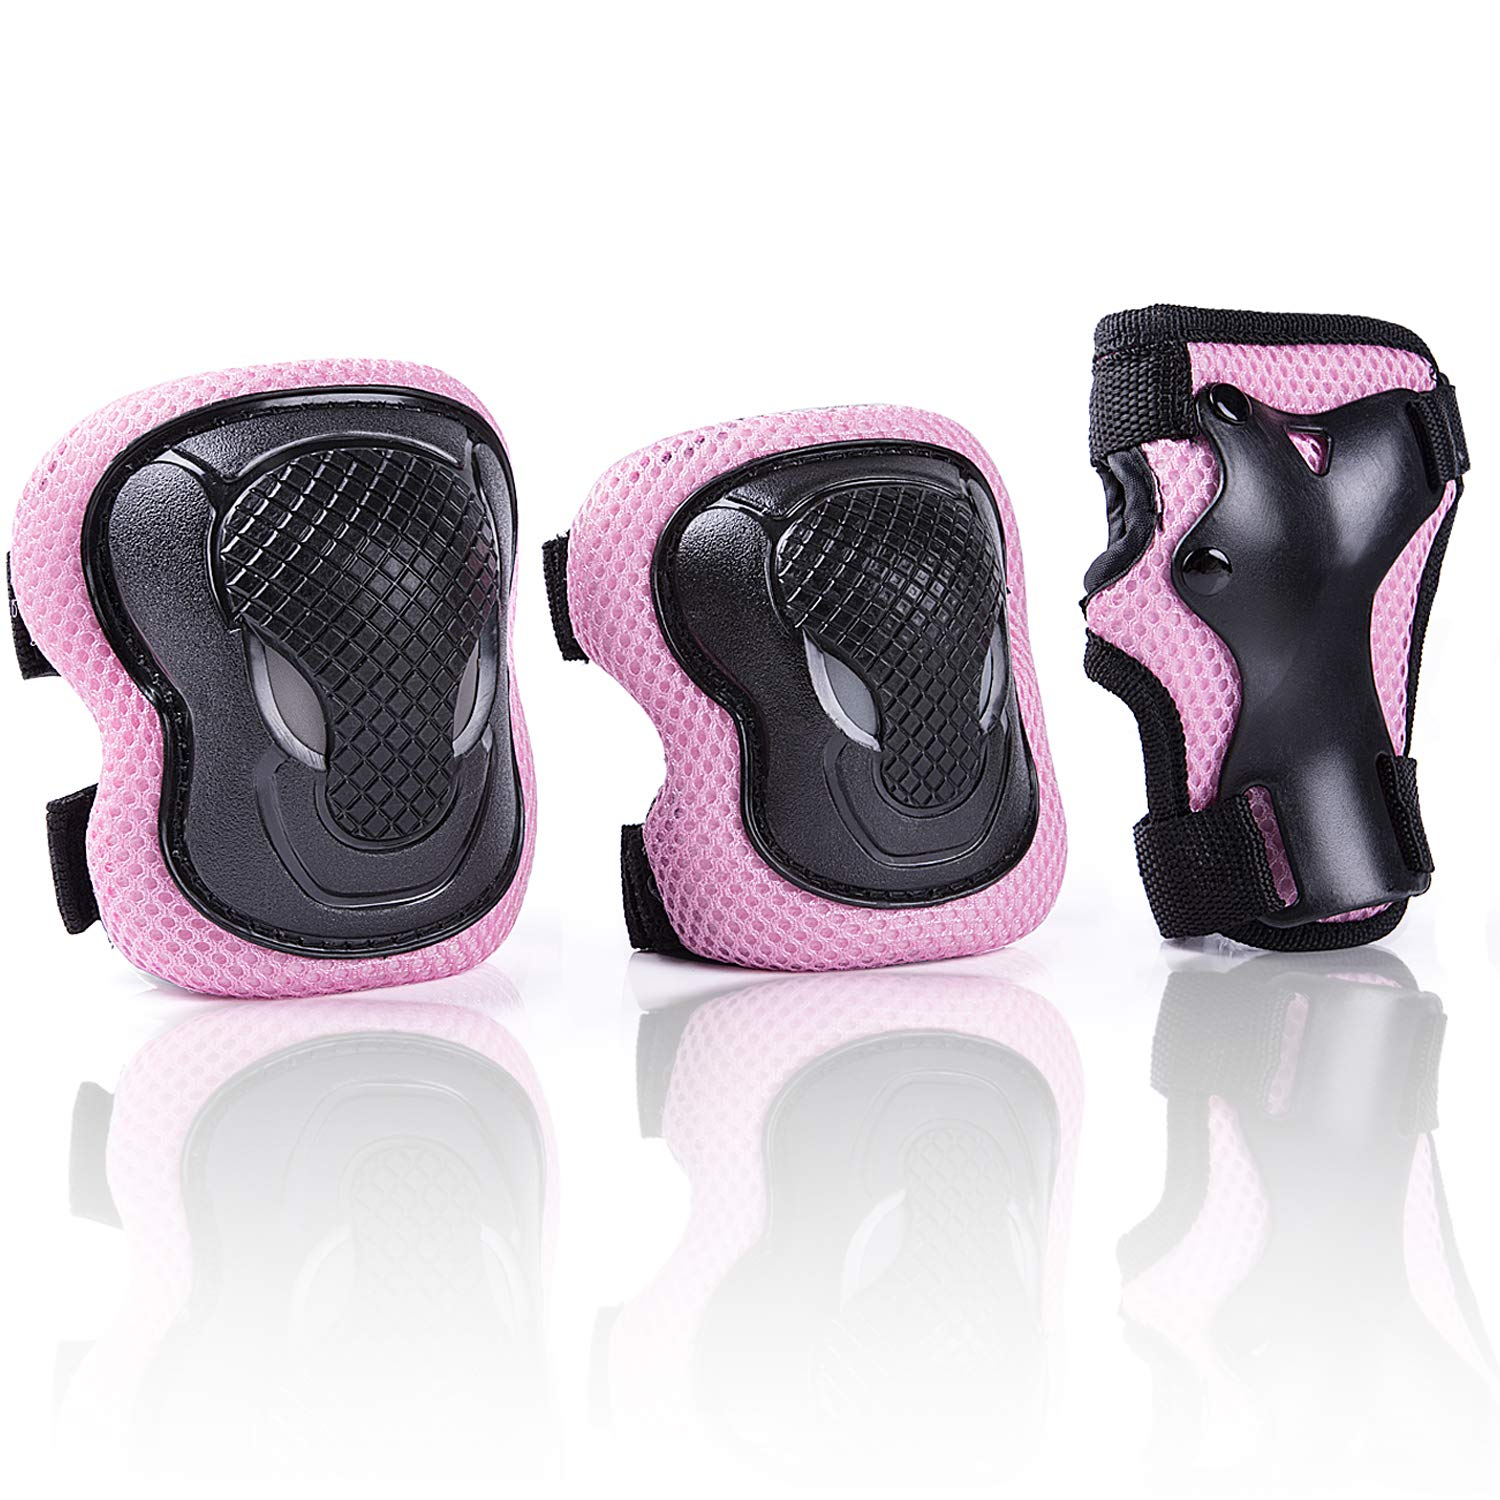 Kuxuan Girl's Cira Pink Protective Gear Set Including Knee Pads Elbow Pads and Wrist Guards, For Kid Multi Sports Uses: Skateboarding, Roller Skating, Cycling, Balance Biking, and Scooter - Small